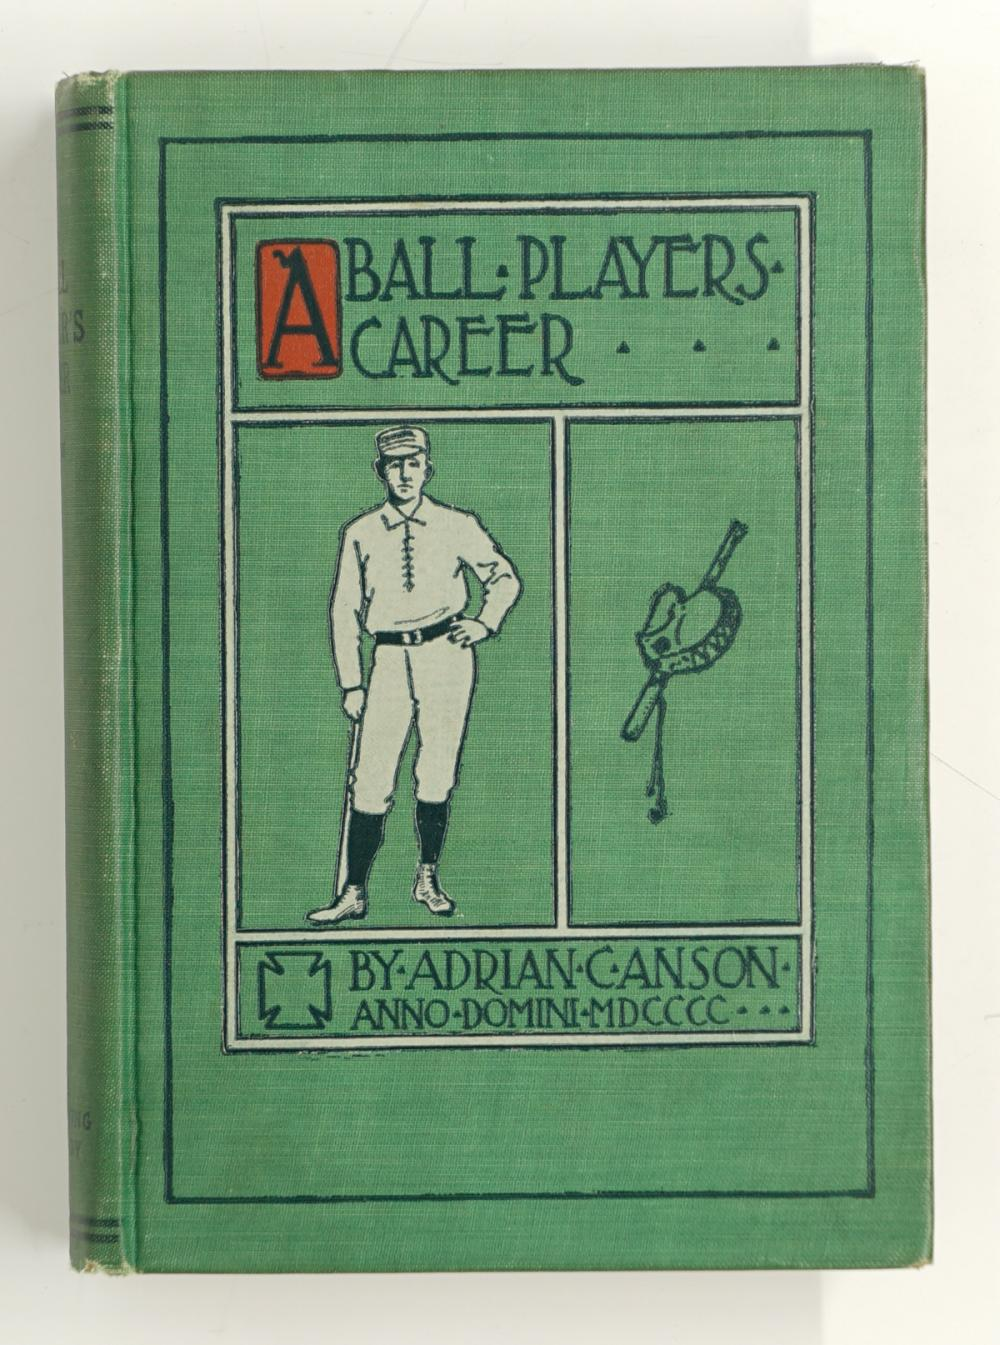 1900 A Ball Players Career by Cap Anson